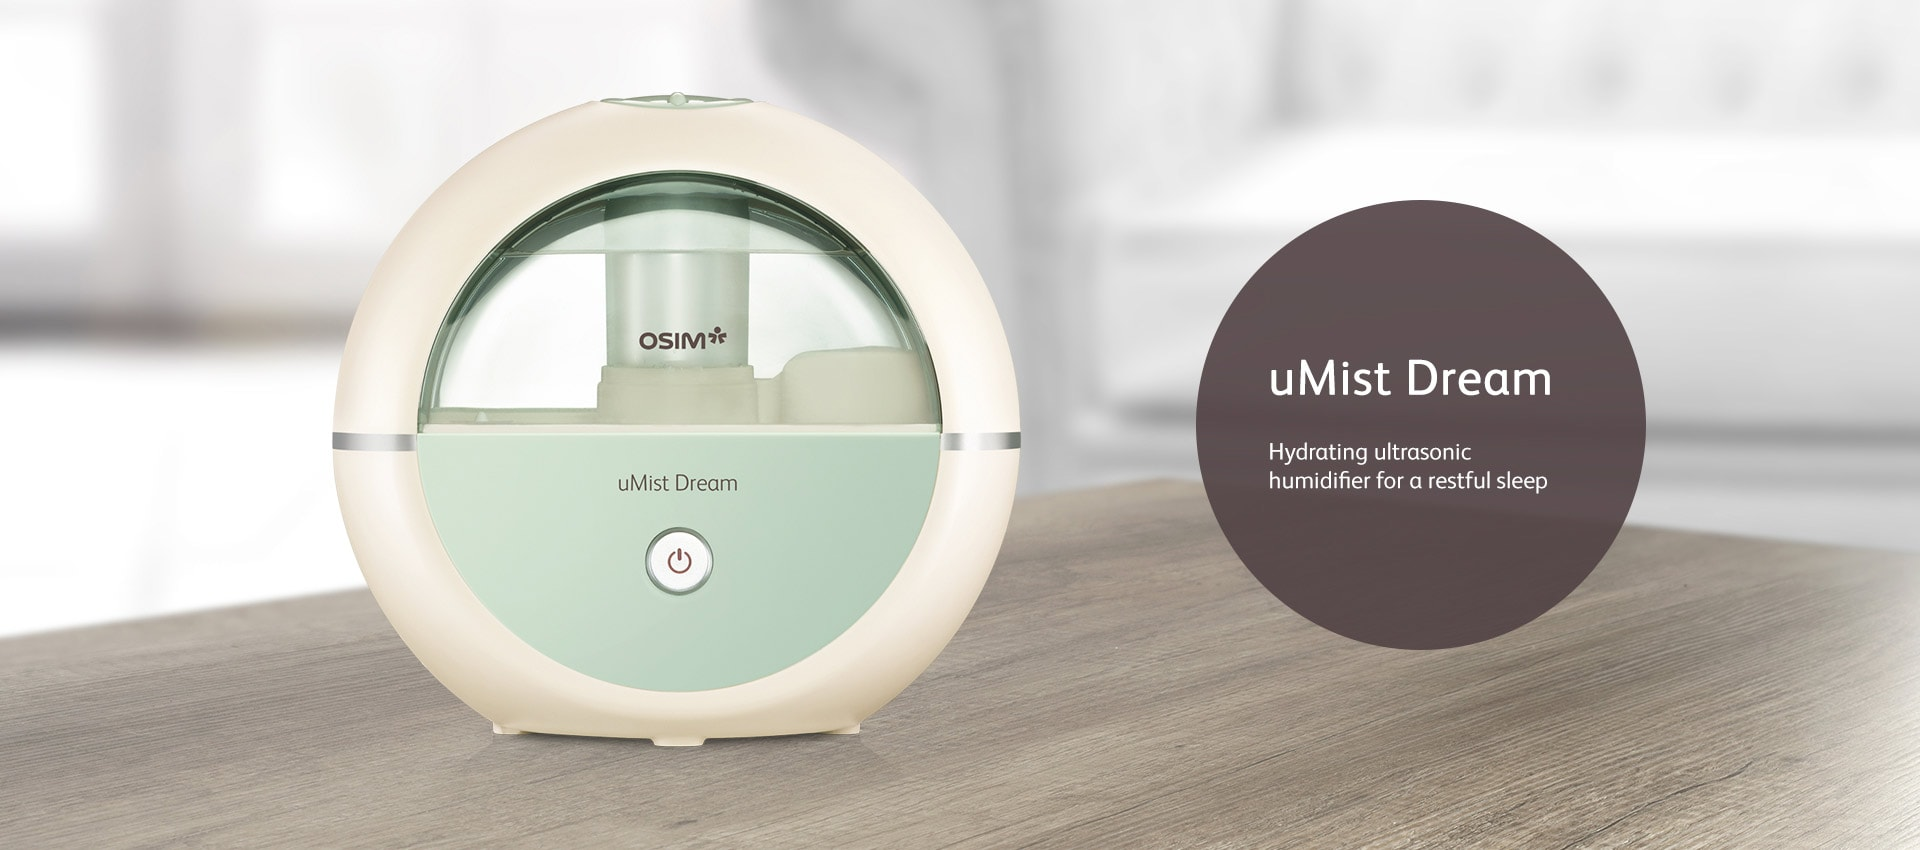 Umist Dream Humidifier Ultrasonic Technology